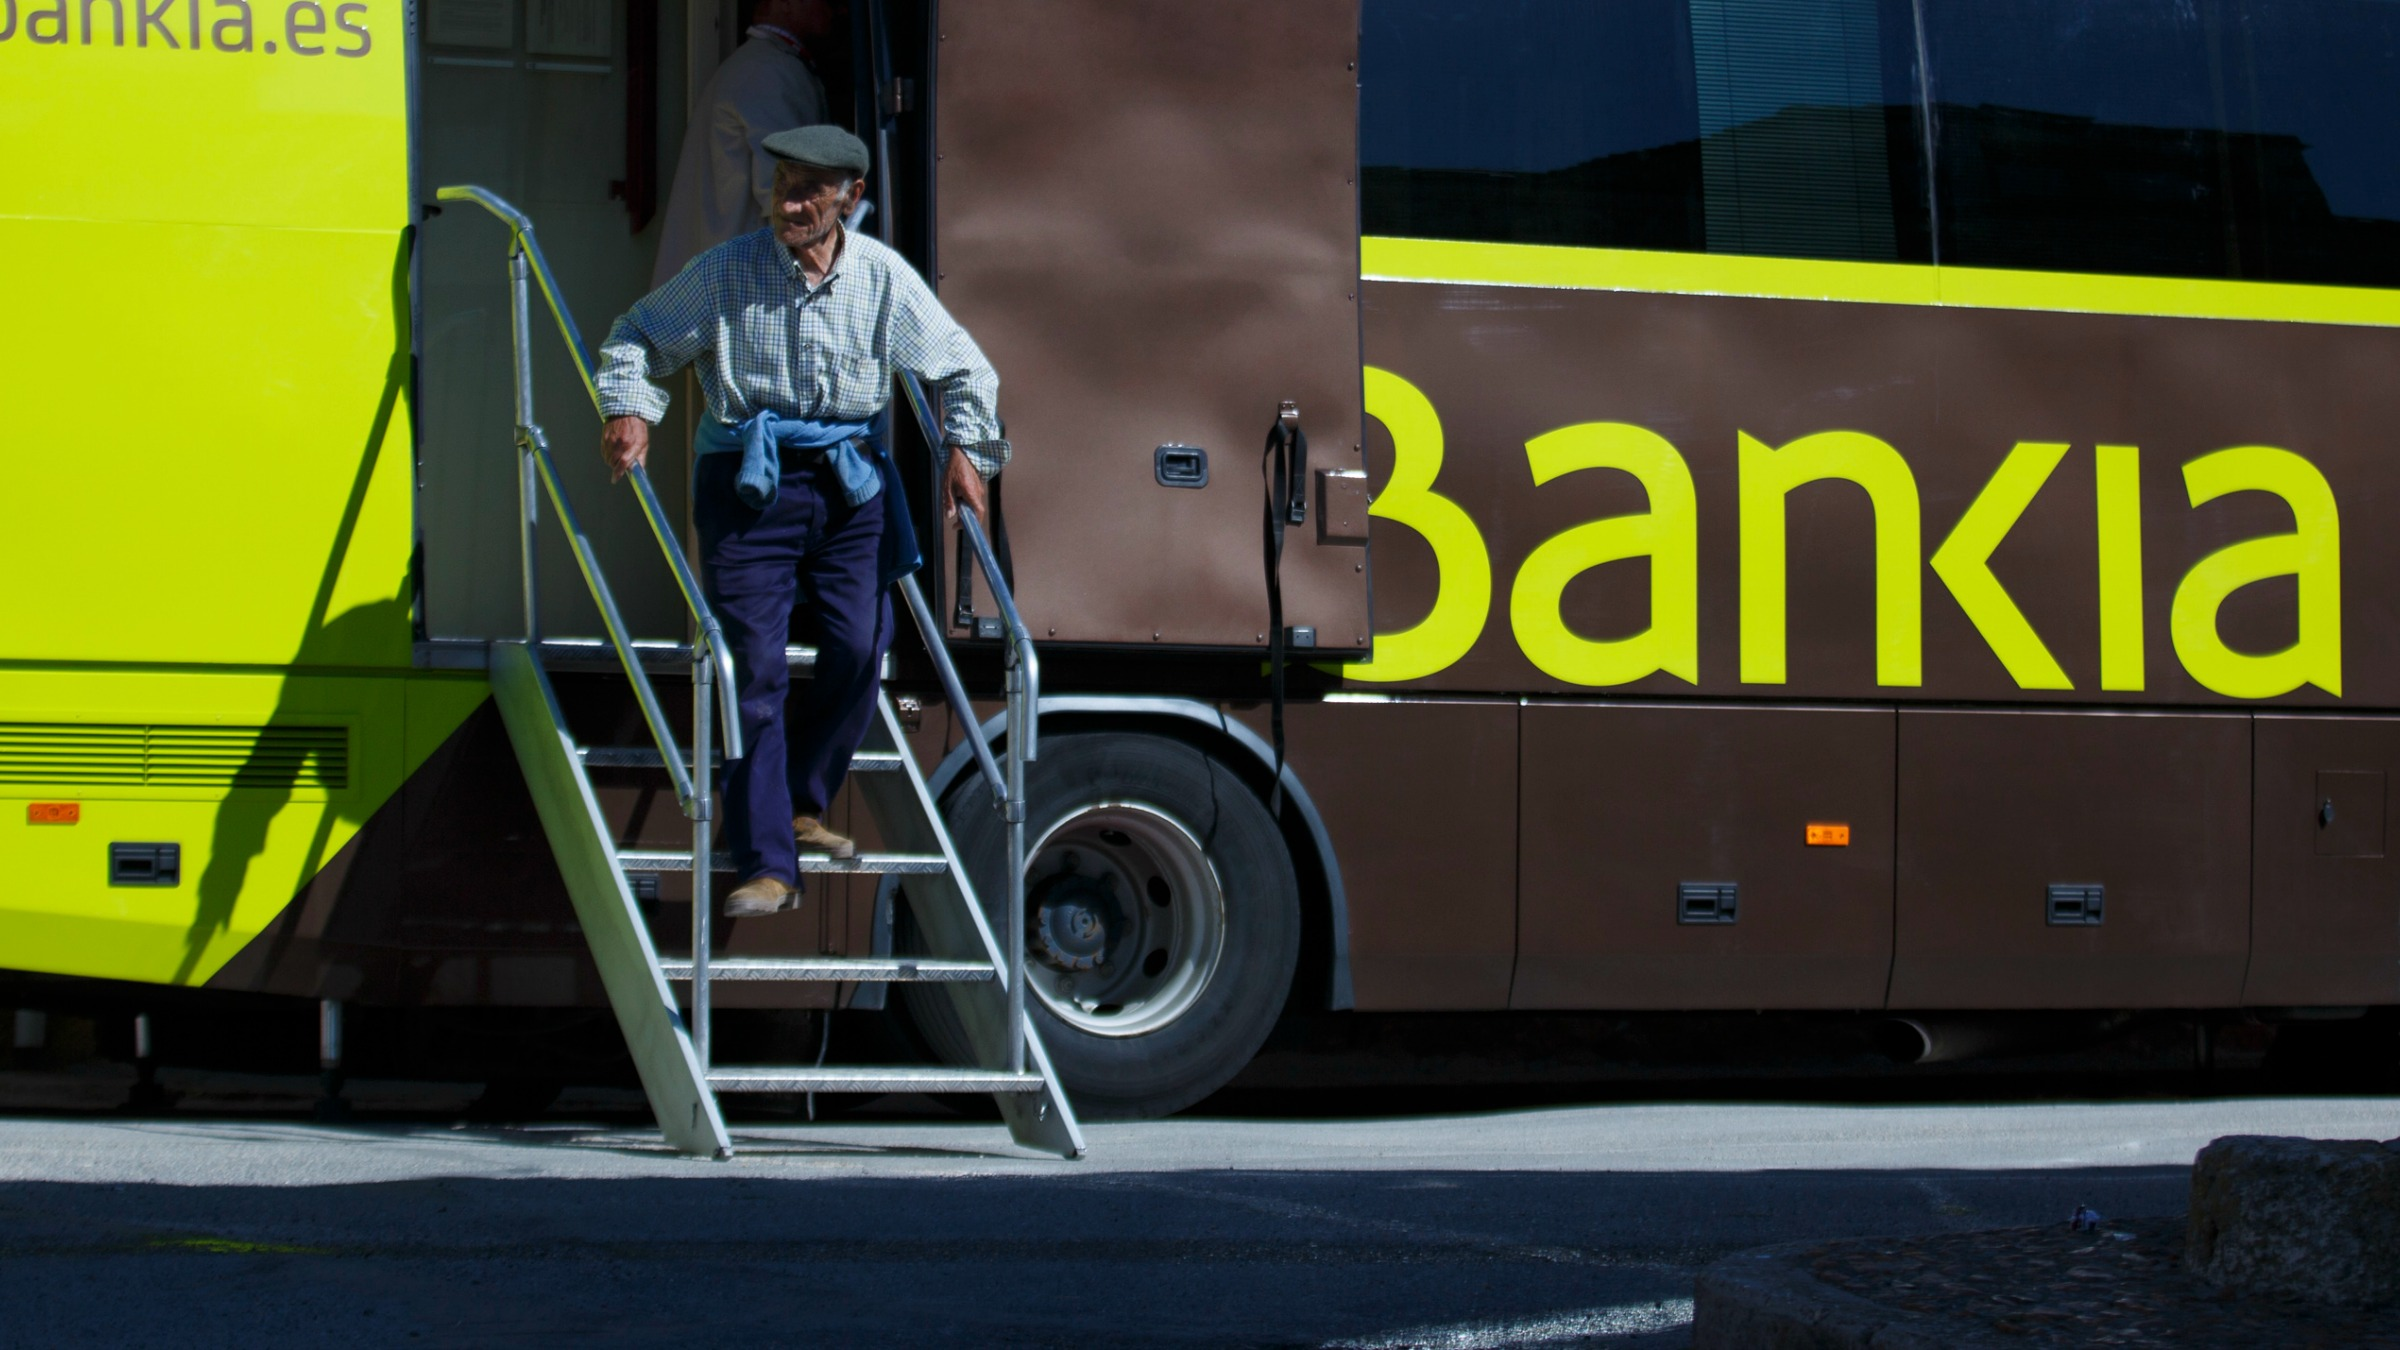 Bankia bank bus